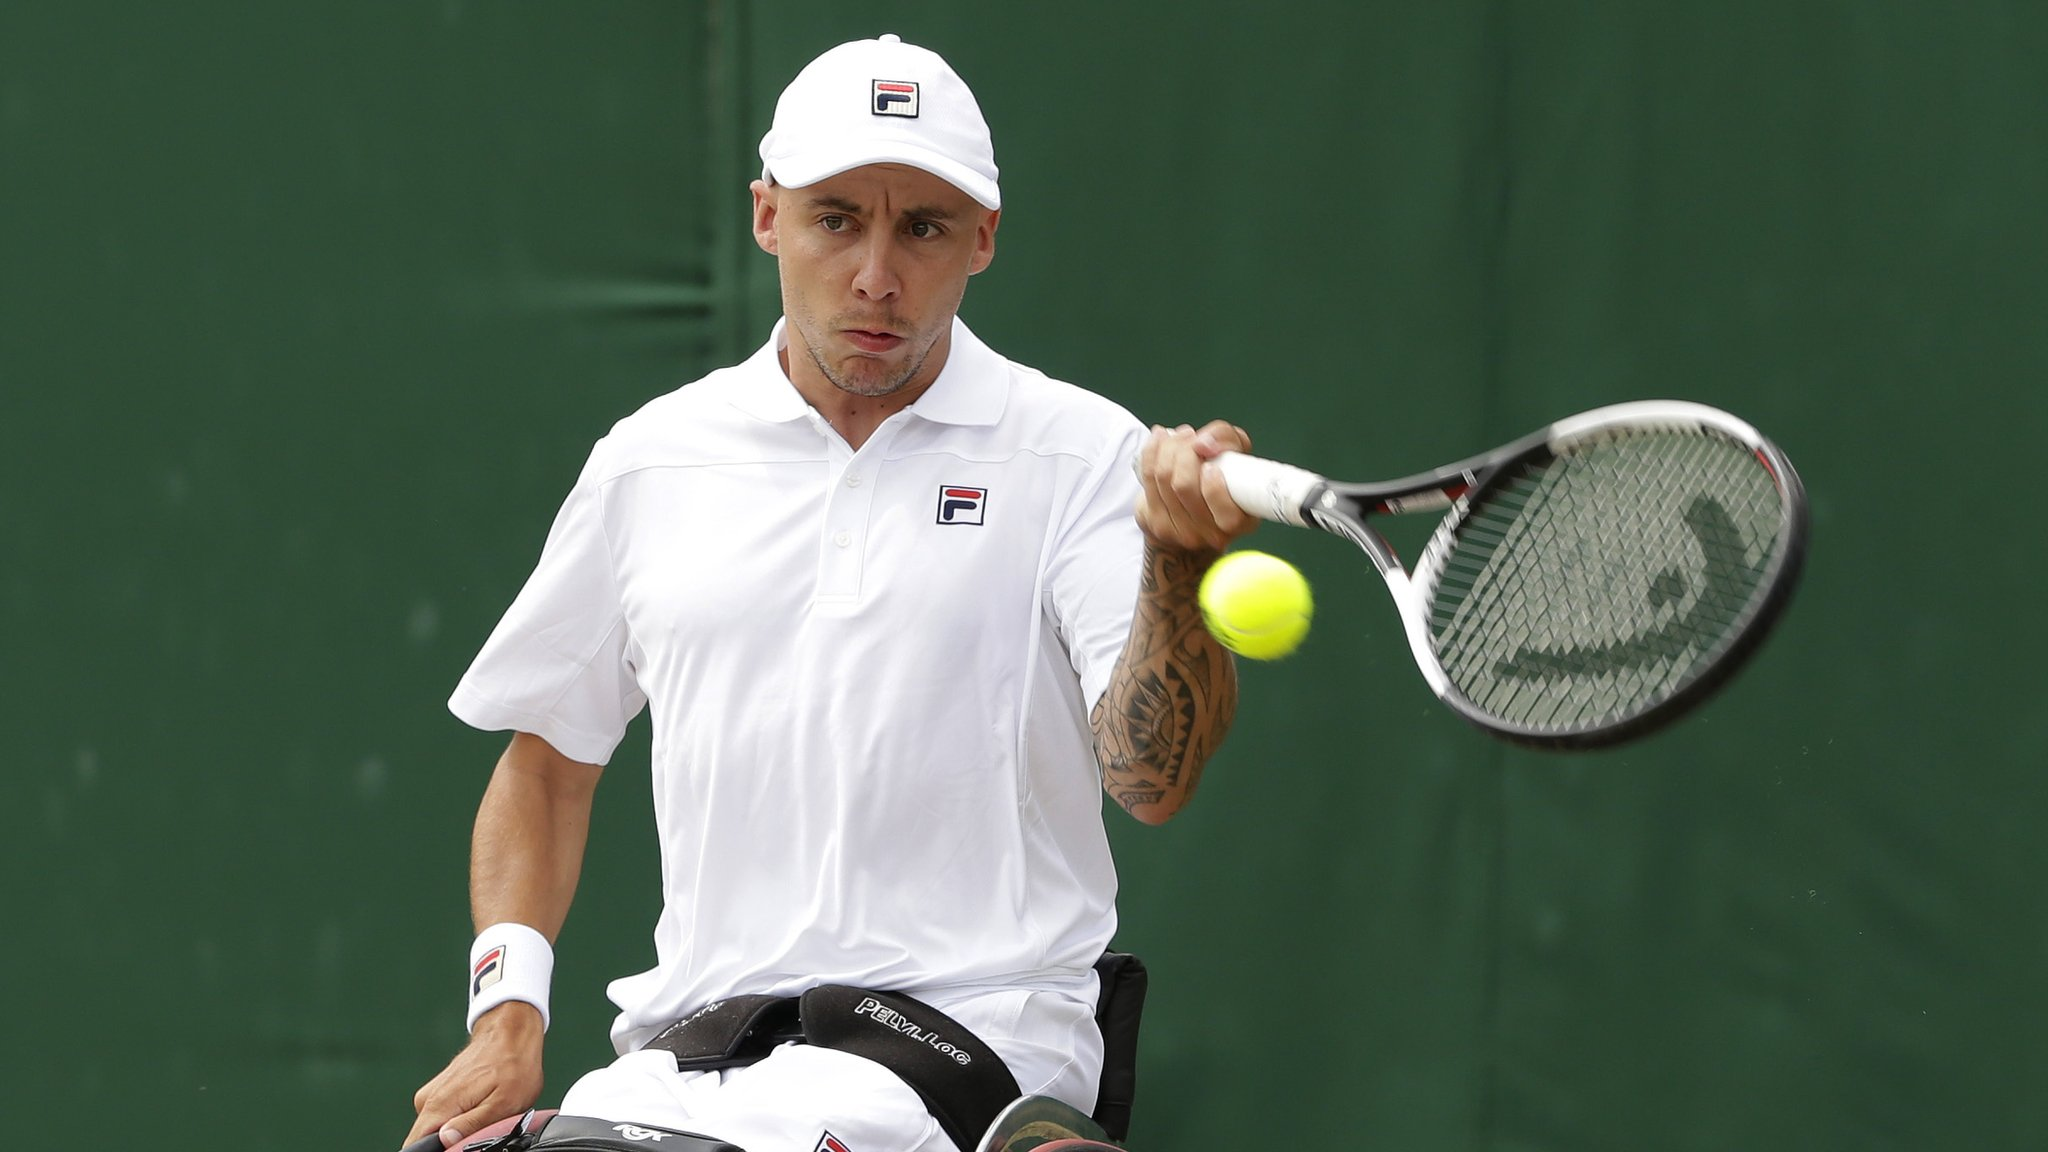 Wimbeldon: Wheelchair quad events added to schedule in 2019